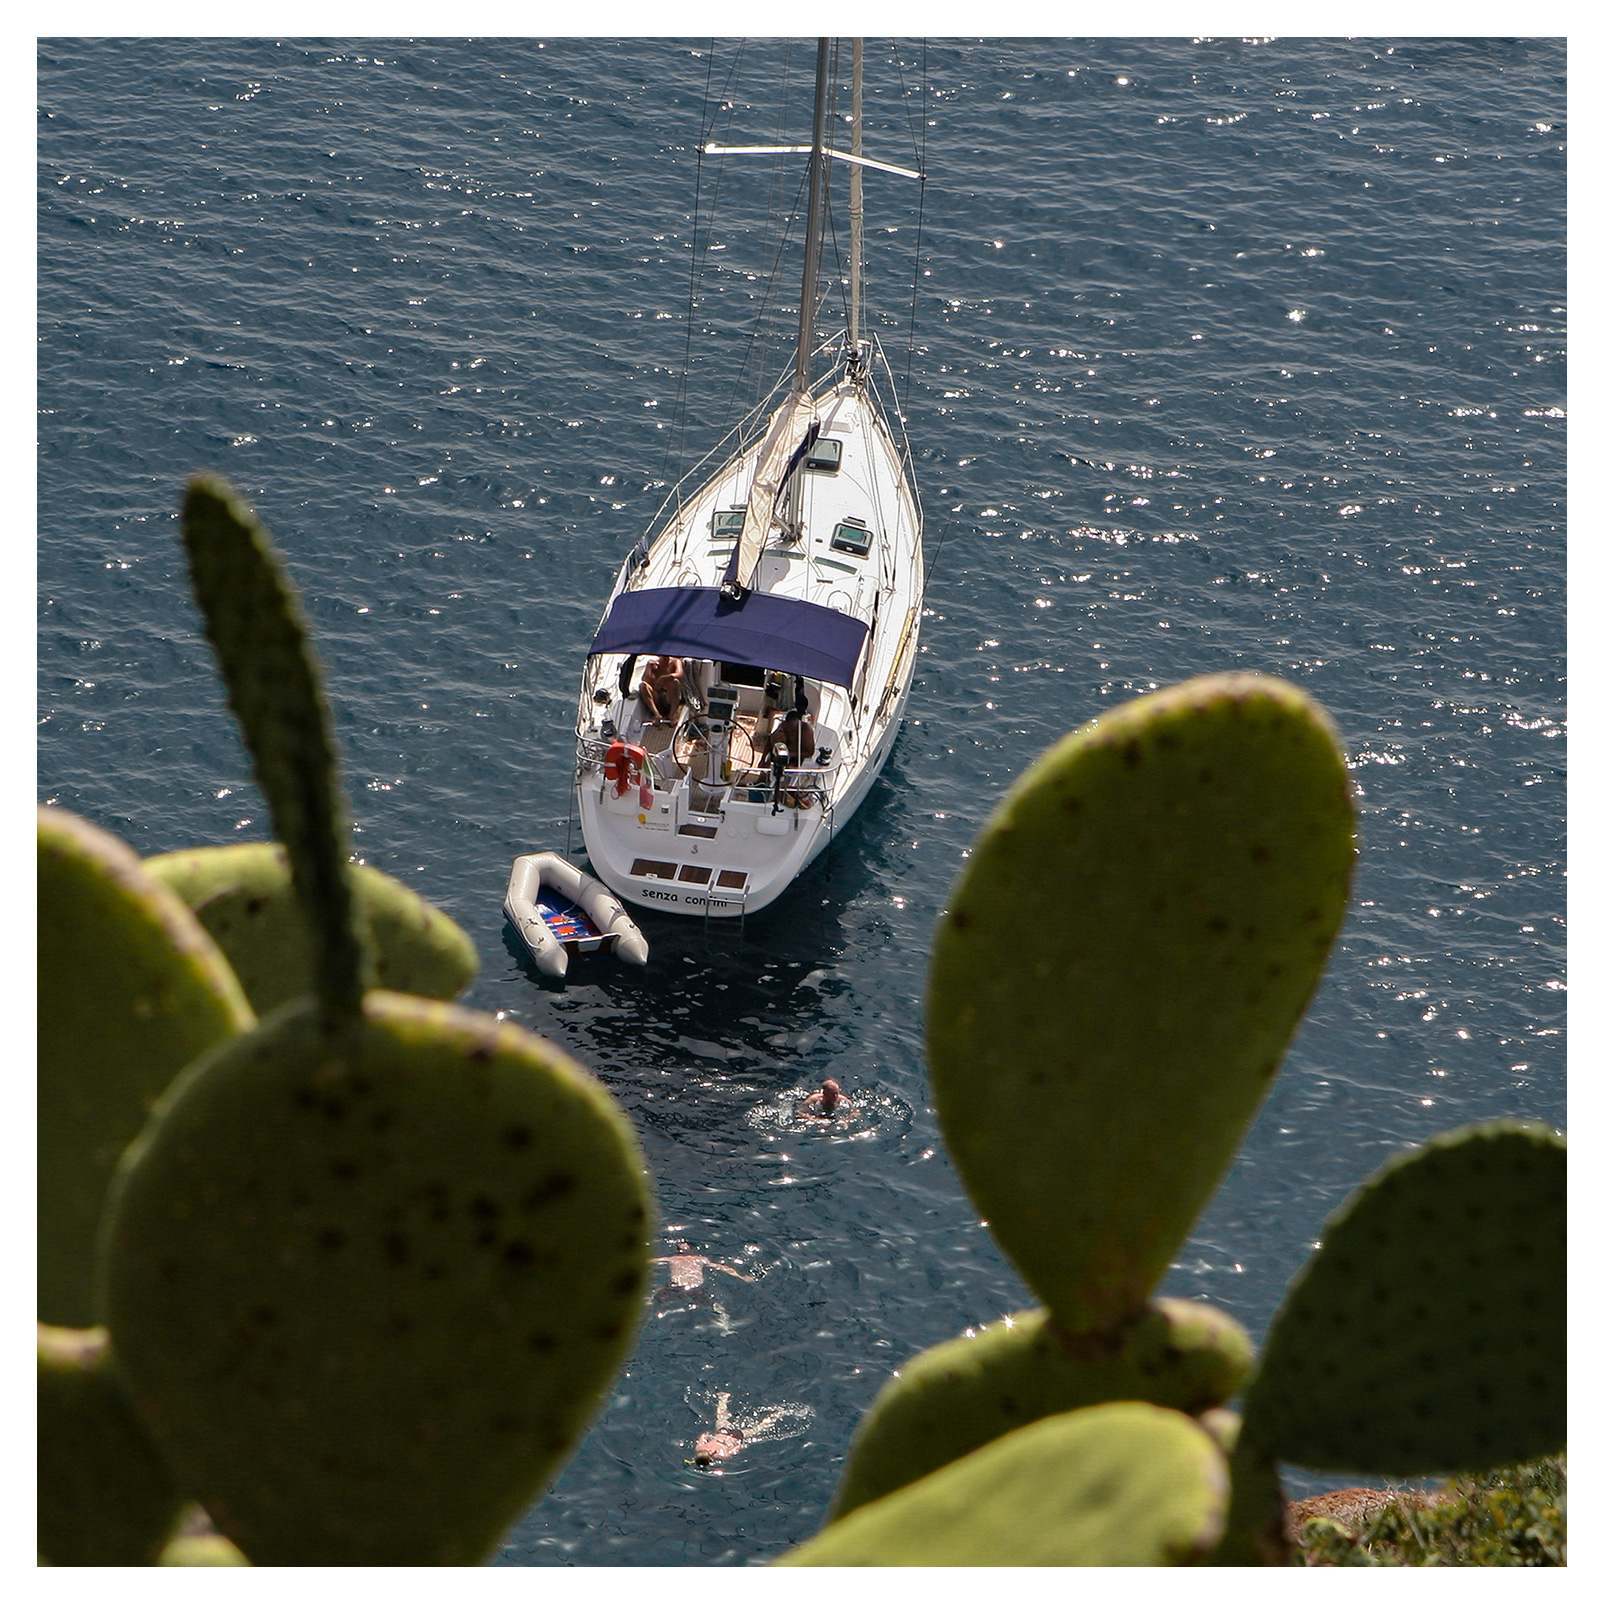 People swimming next to a sailing yacht anchored off Capo Milazzese, Panarea, Aeolian islands, Sicily